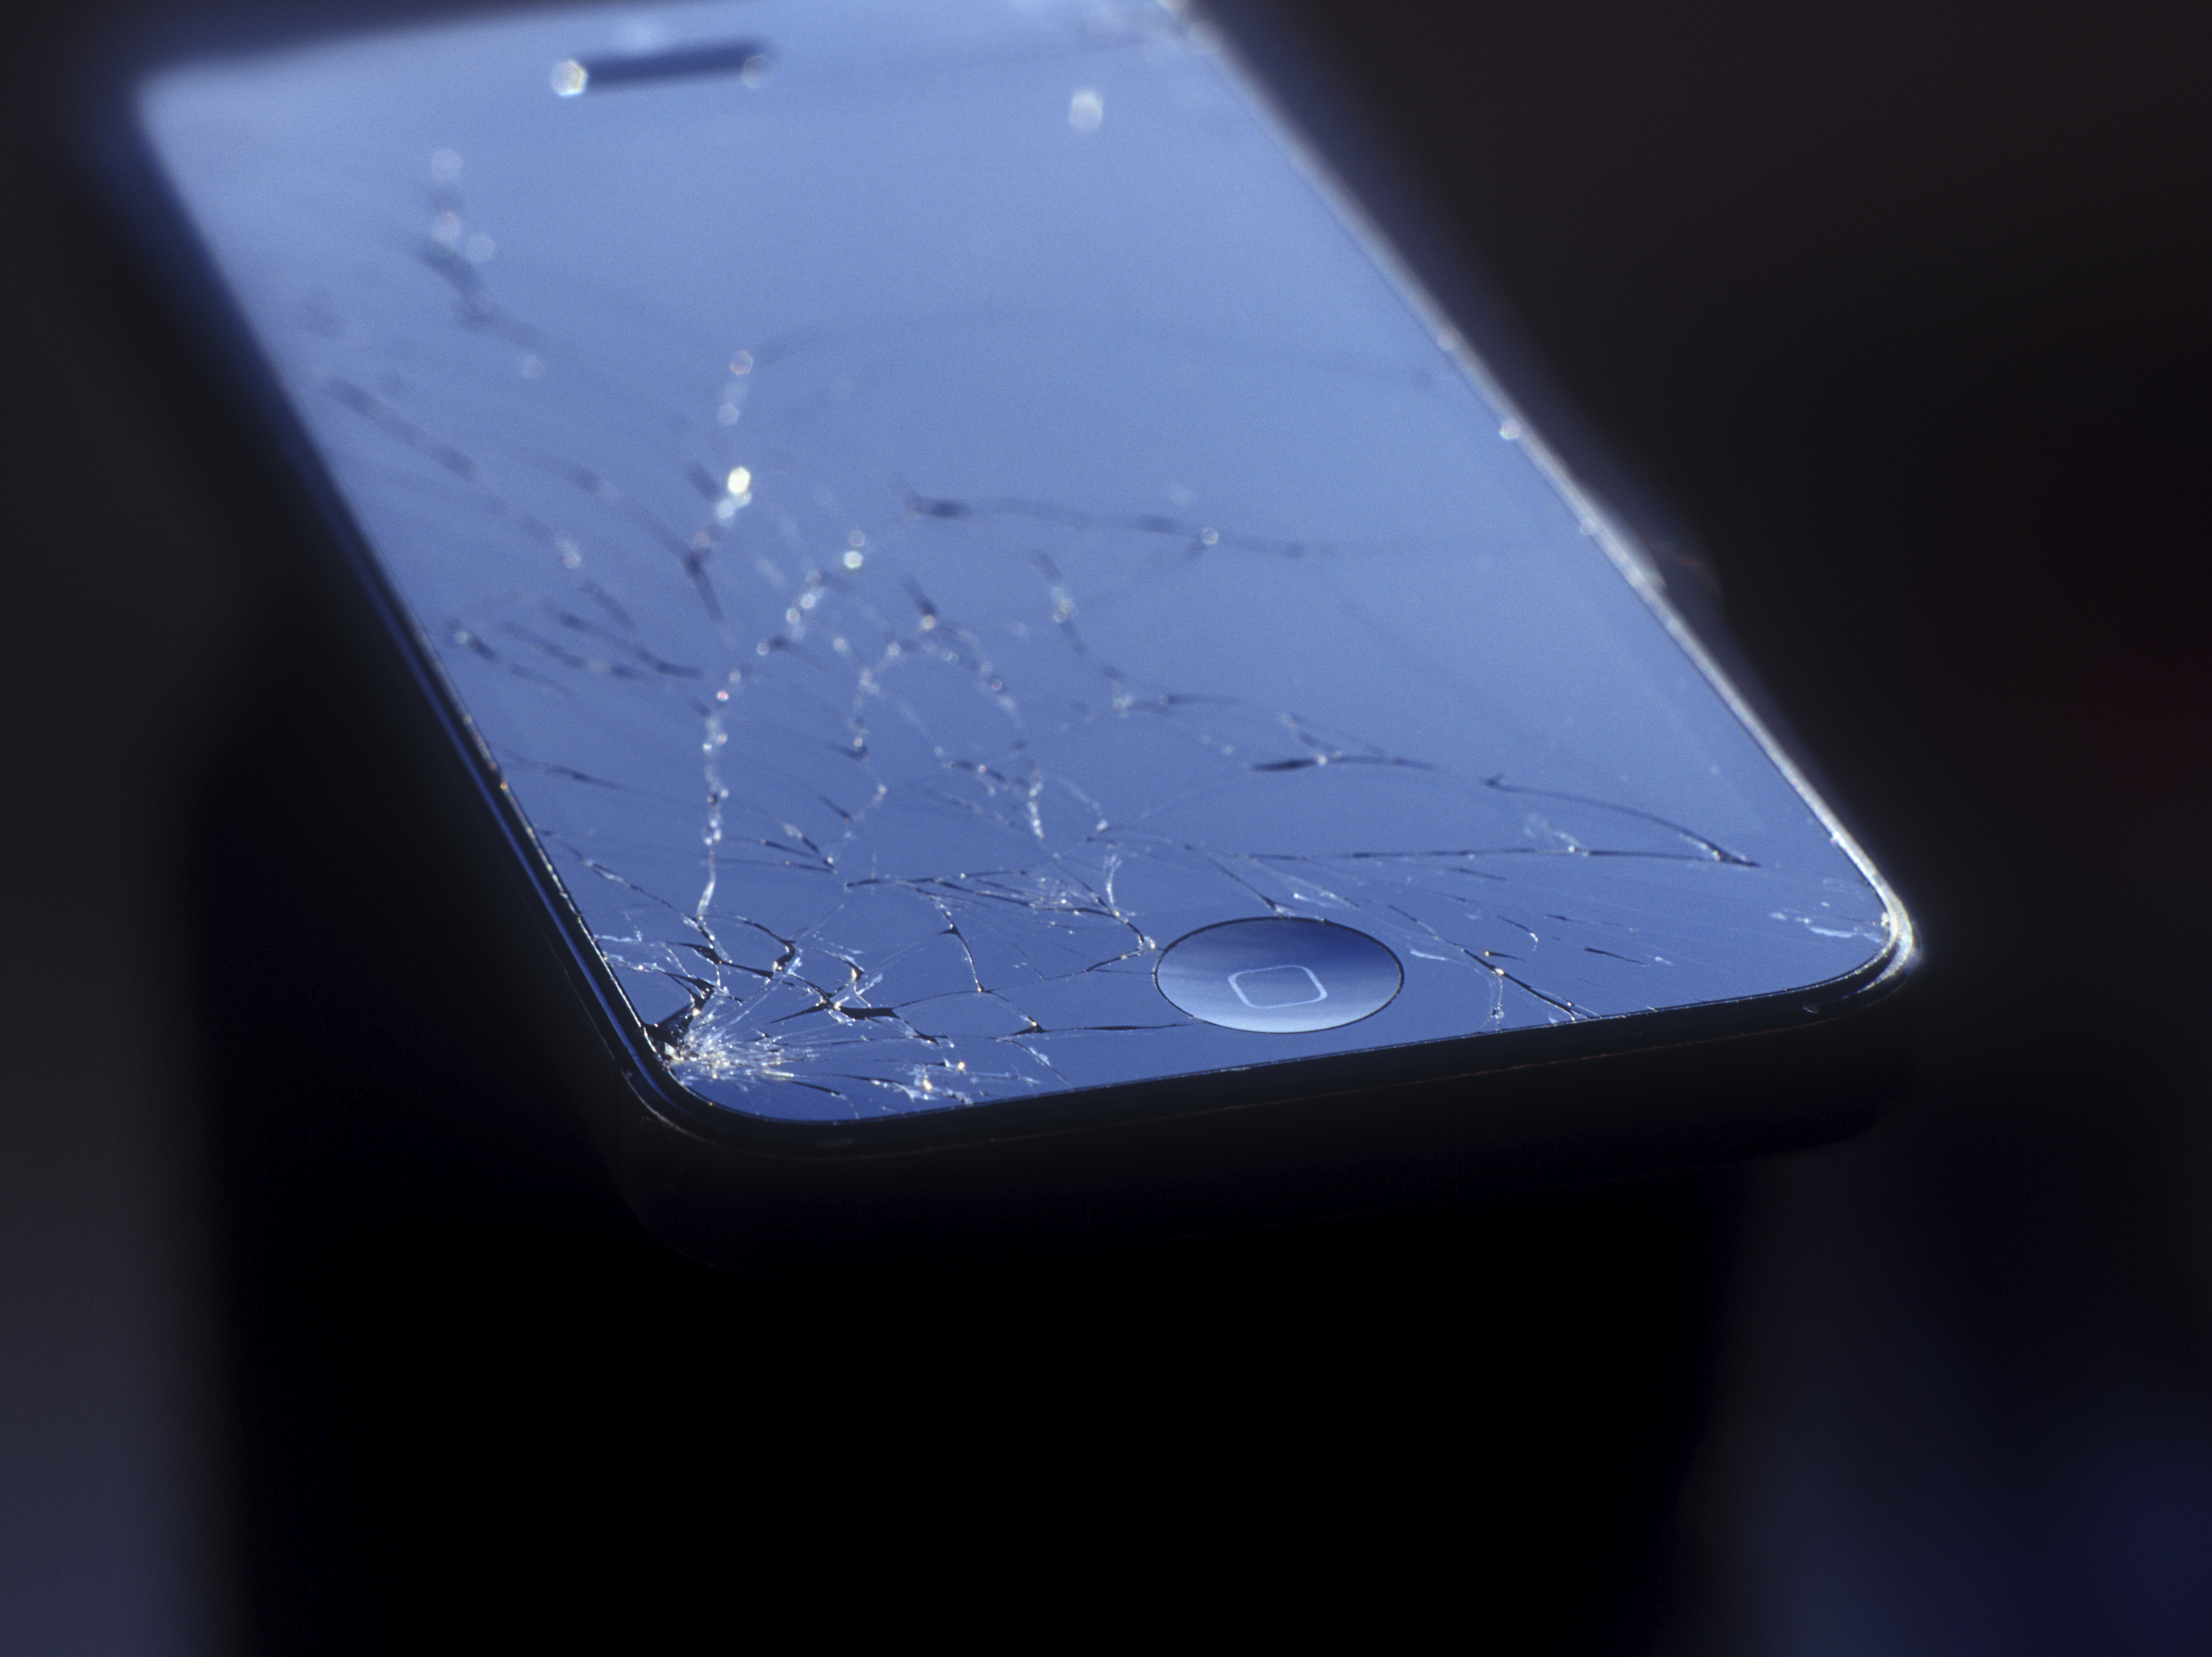 The home button of an iPhone is often replaced when its screen is repaired (mshch)